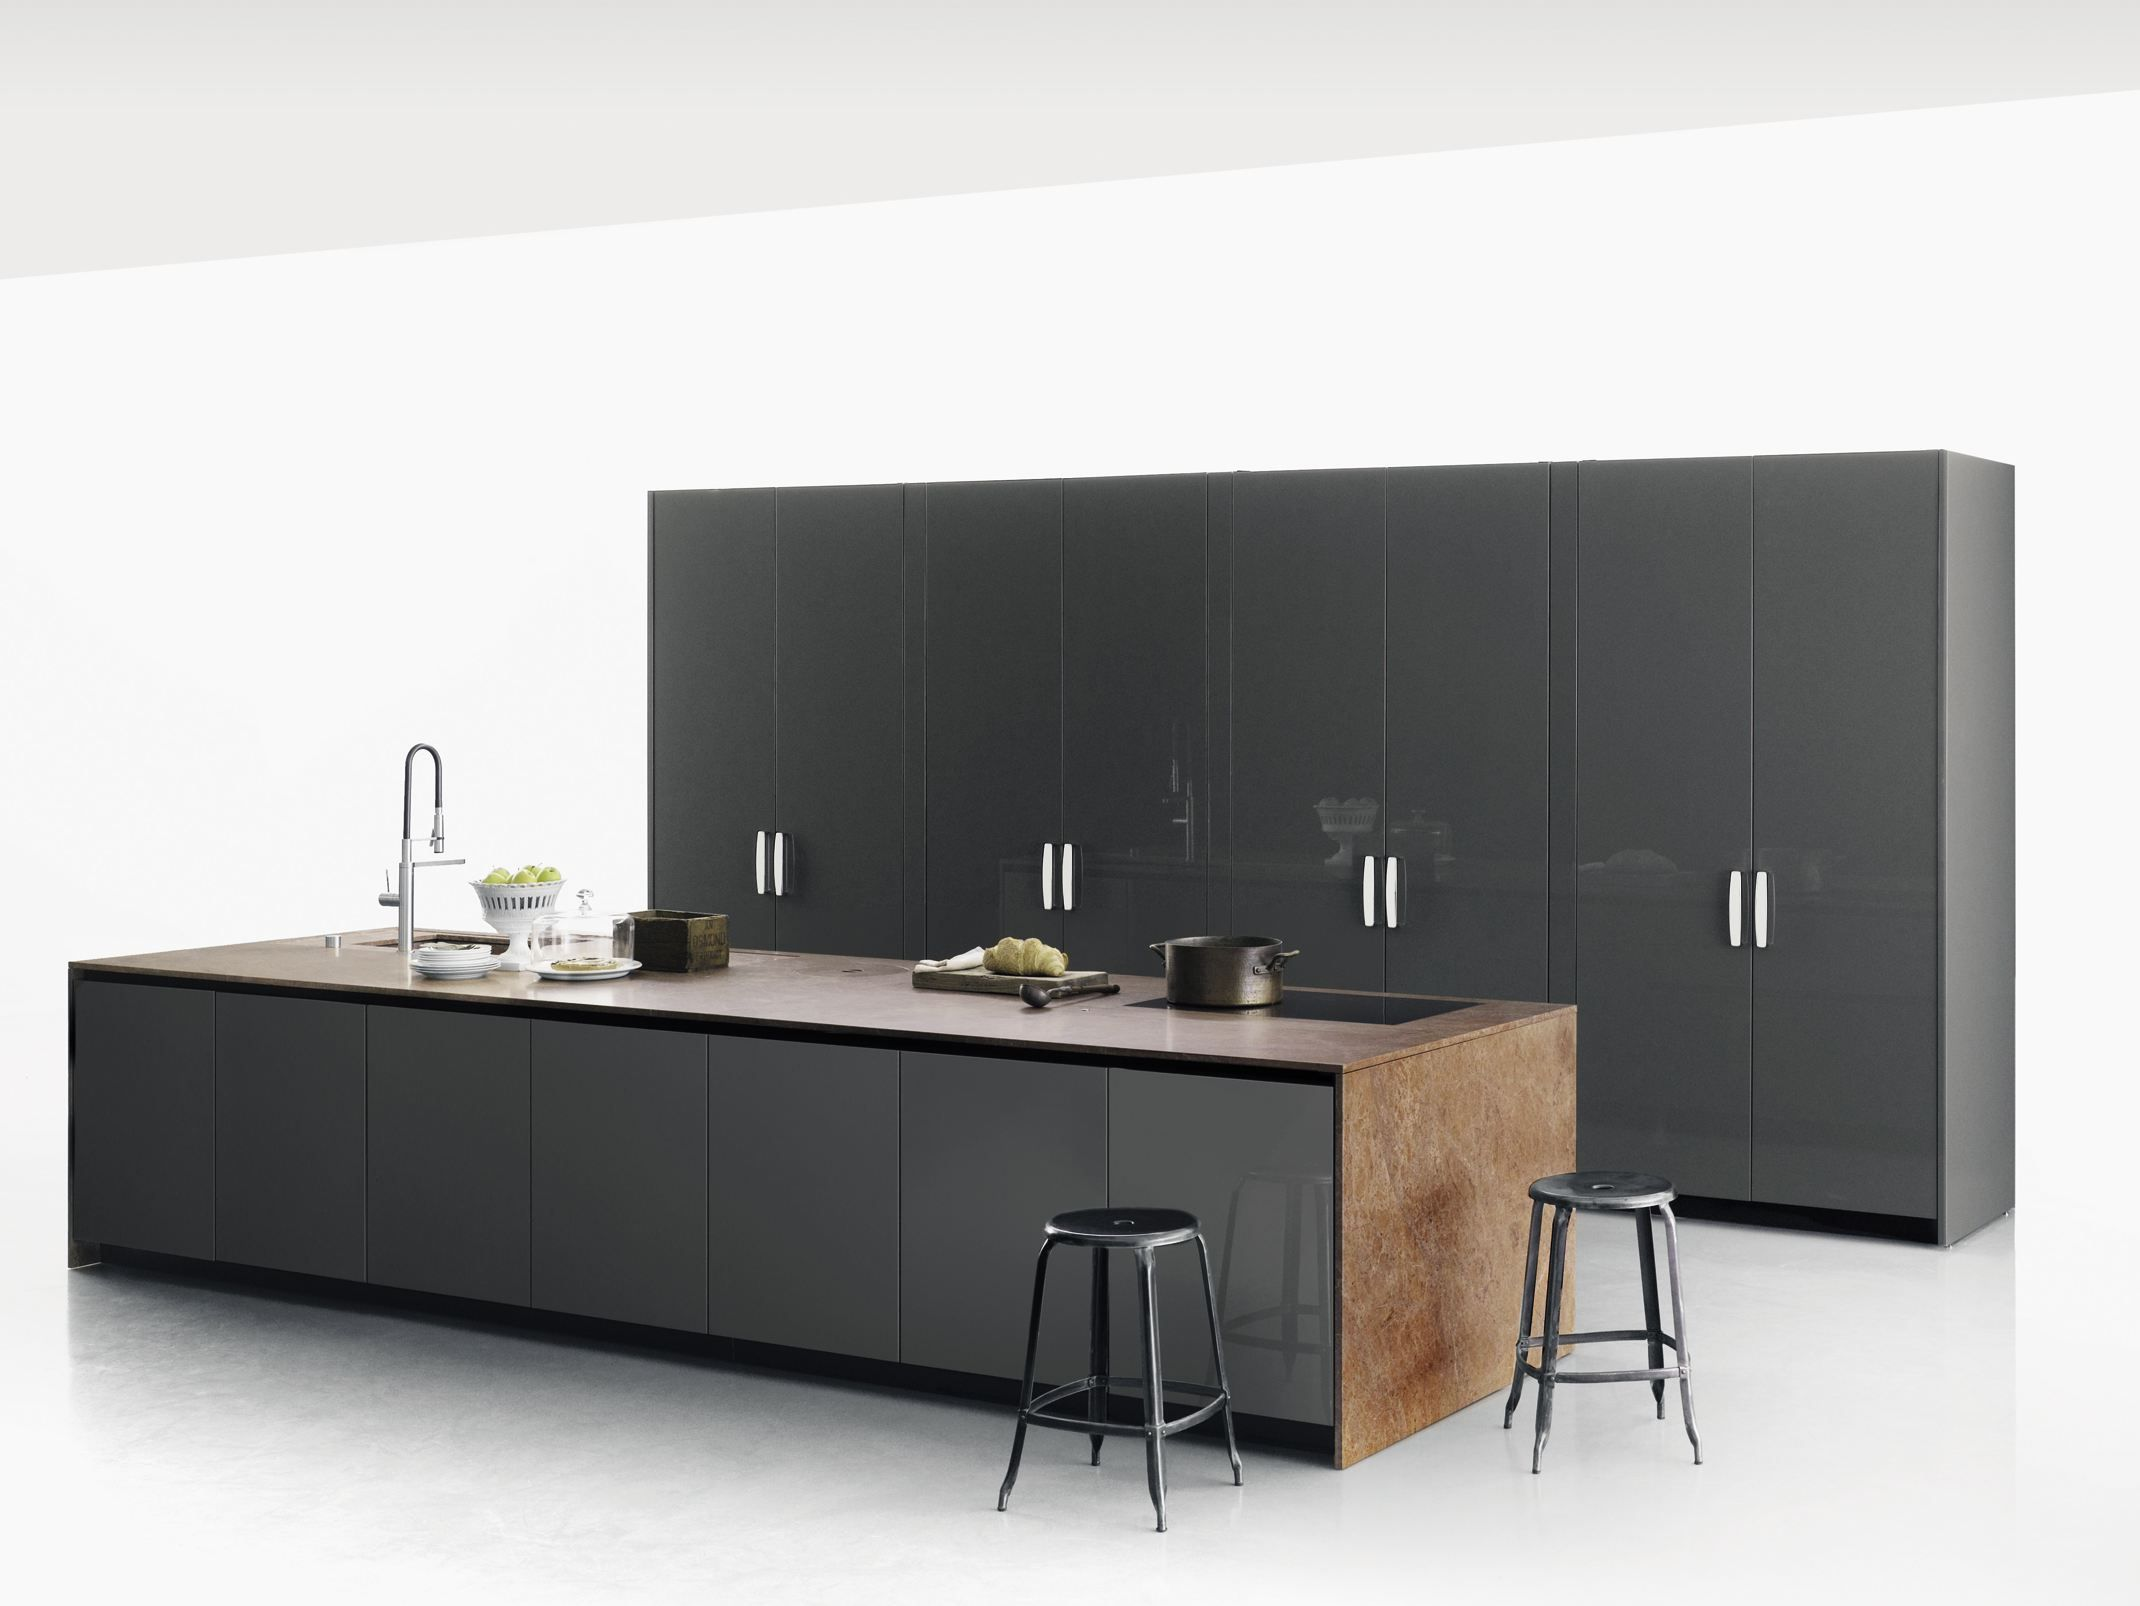 Cuisines Boffi Boffi Kitchens Would Prefer Some Lighter Grey The Warm Colour